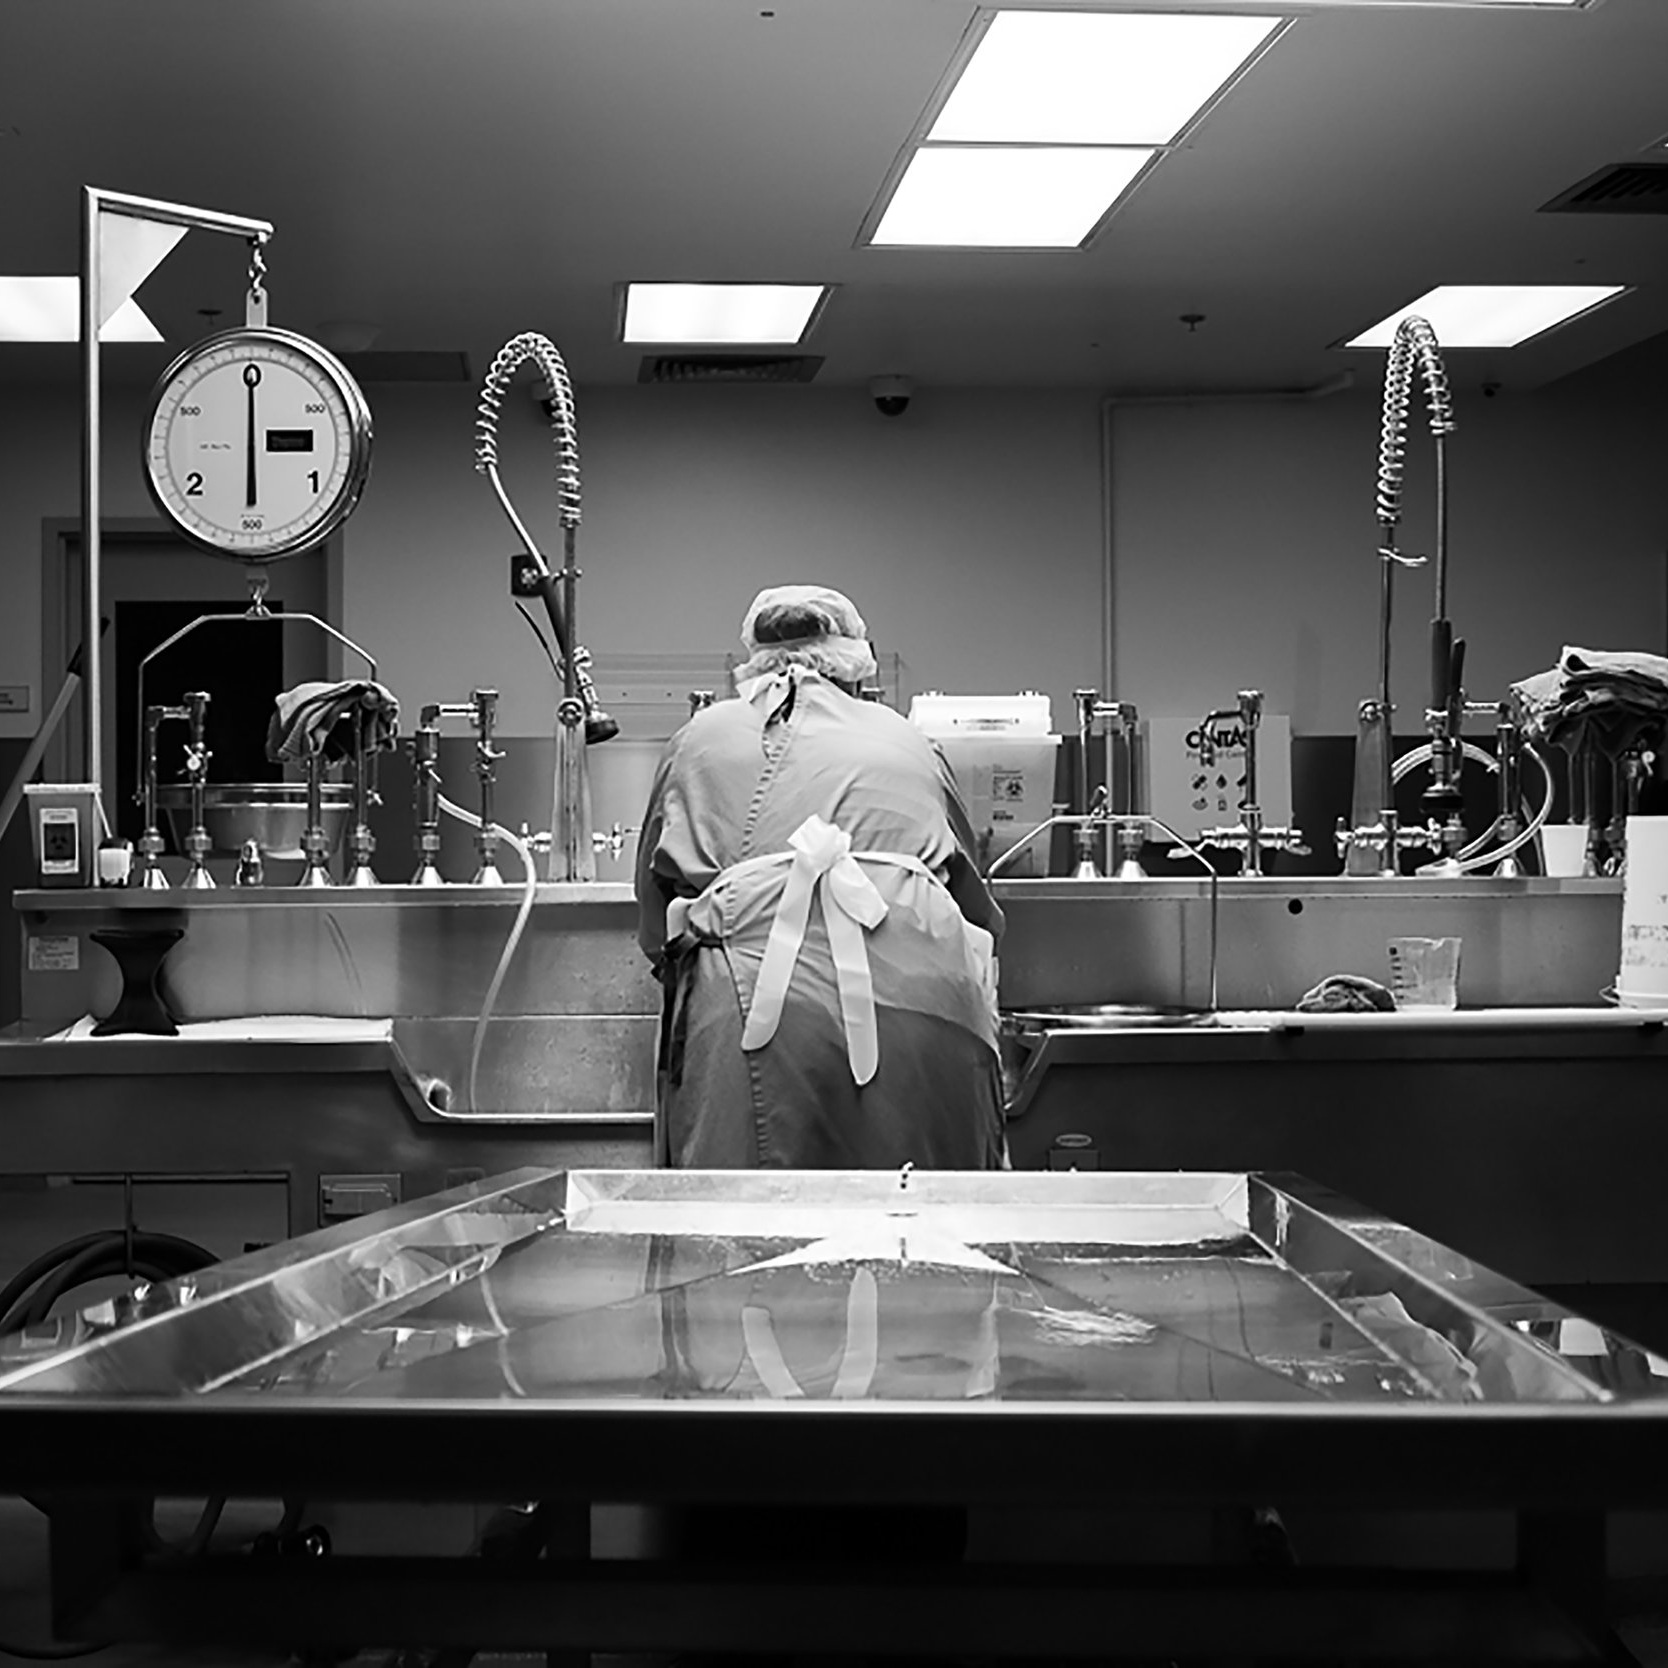 Photos: One woman's life surrounded by death - A look at the day-to-day reality of women in forensics, a field with a fast-growing female workforce.